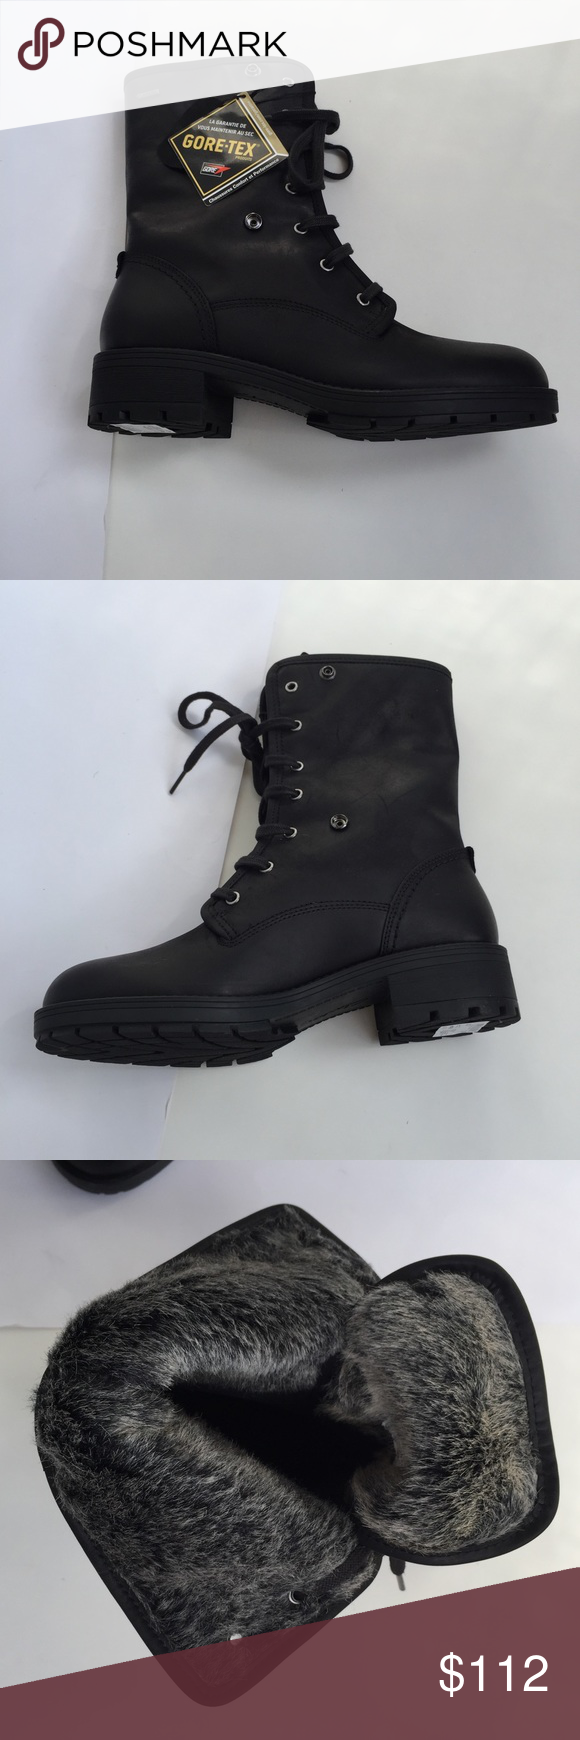 280d46c7 Goretex Clarks women boots Tread on the snowy terrain with ease in ...